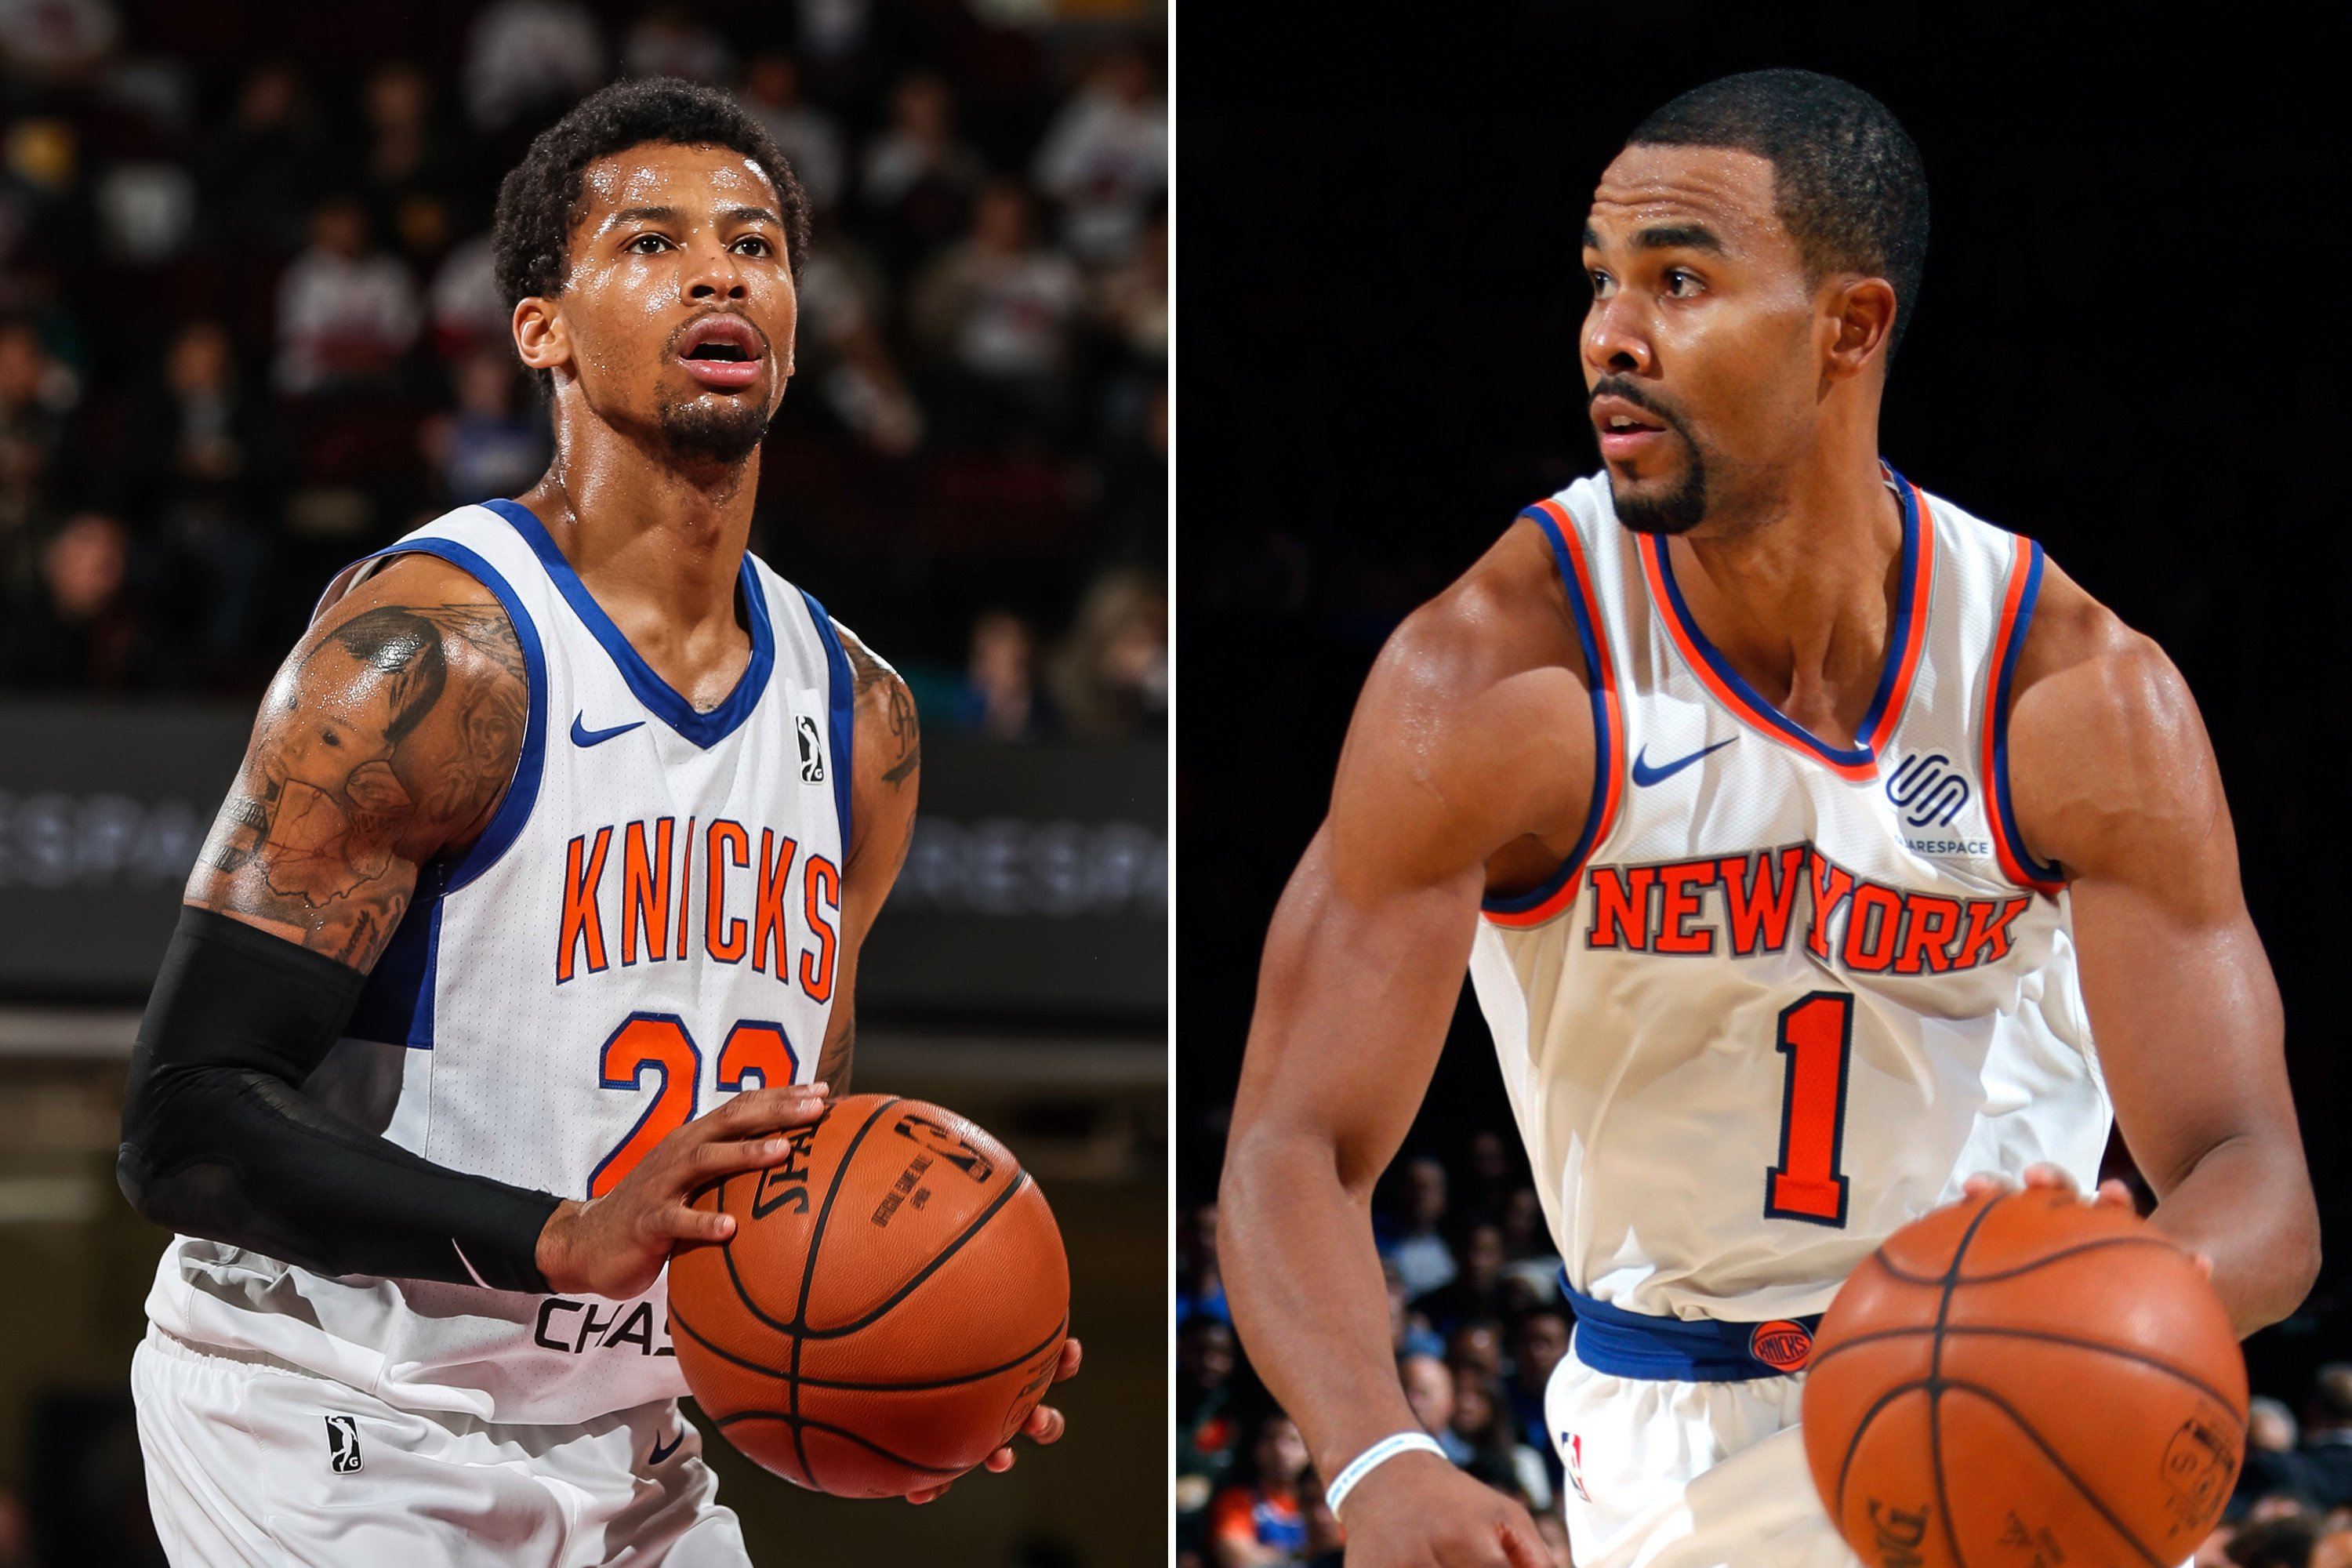 Knicks shuffle roster to give lottery bust a second chance